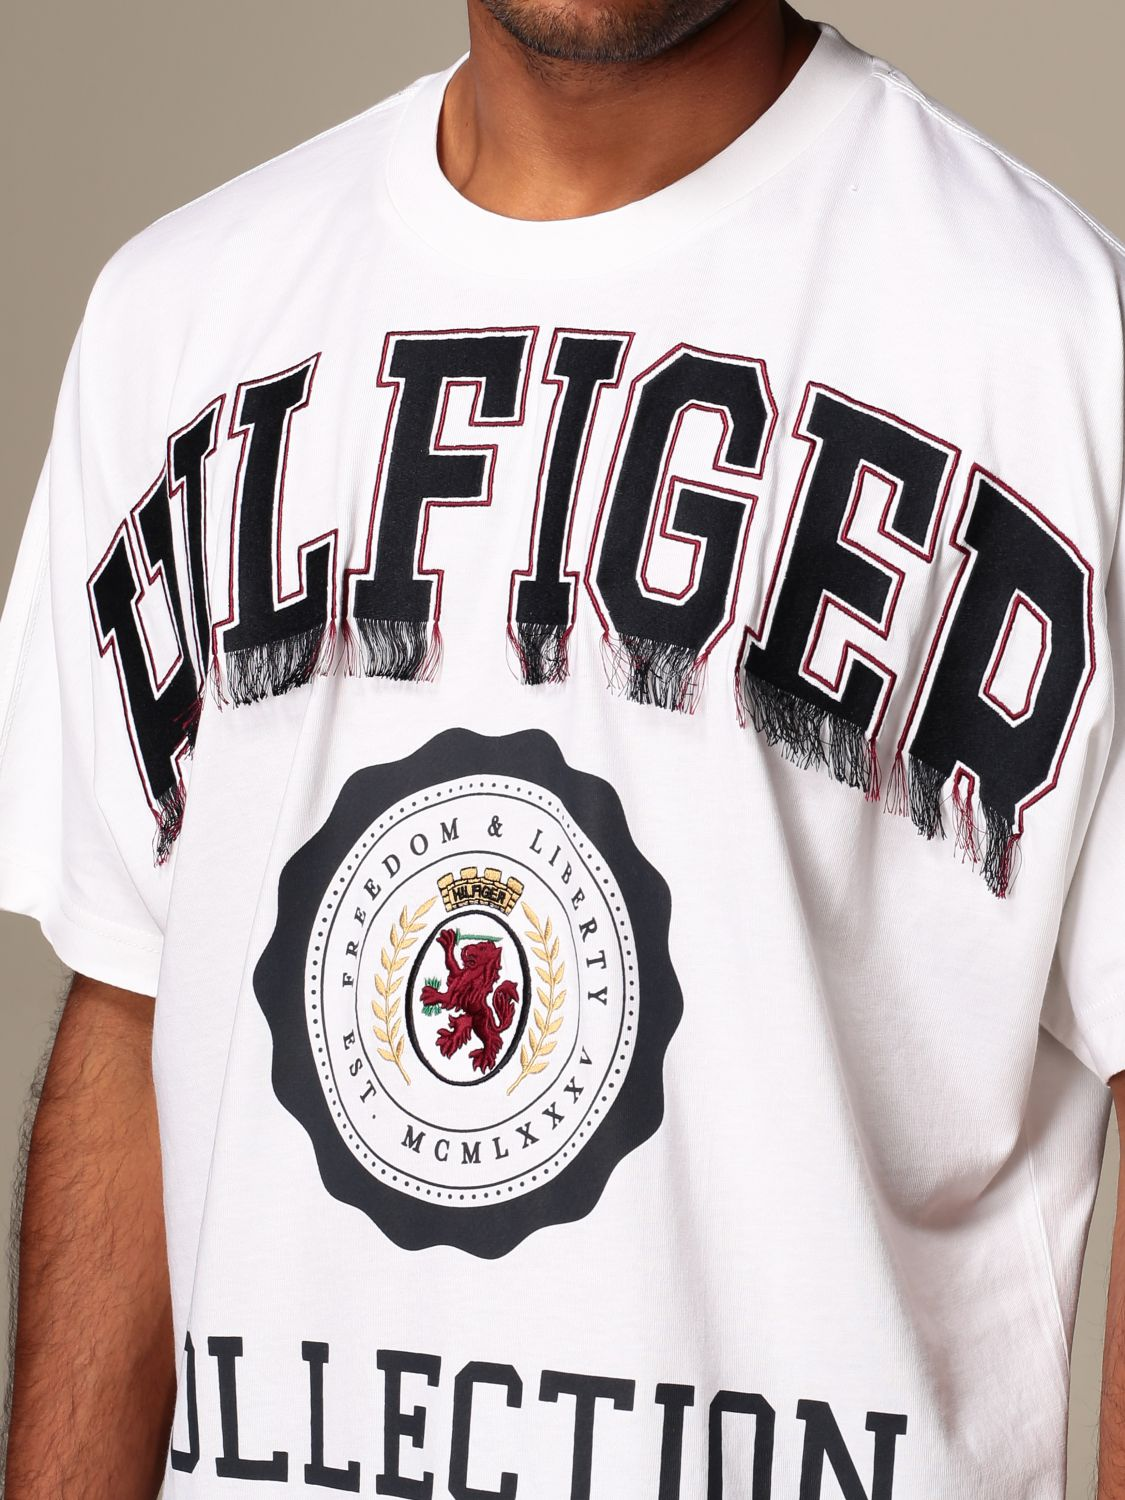 T-Shirt Hilfiger Collection: T-shirt herren Hilfiger Collection weiß 4